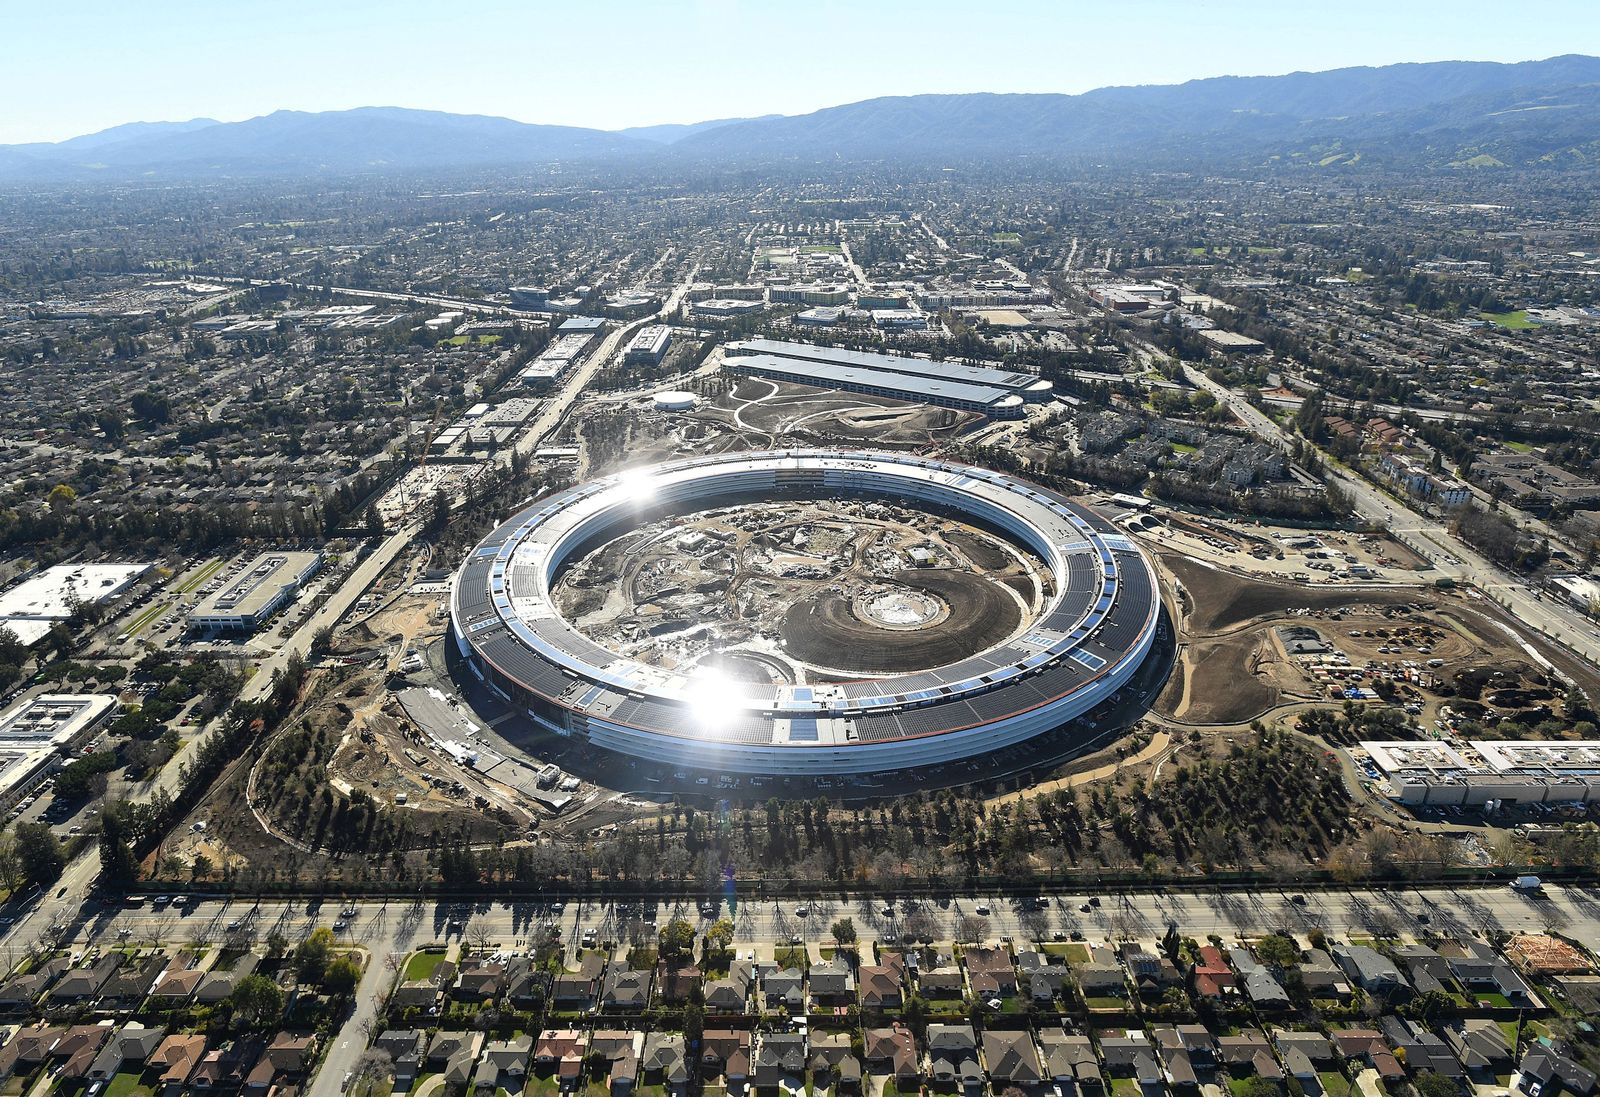 Silicon Valley / Apple Campus